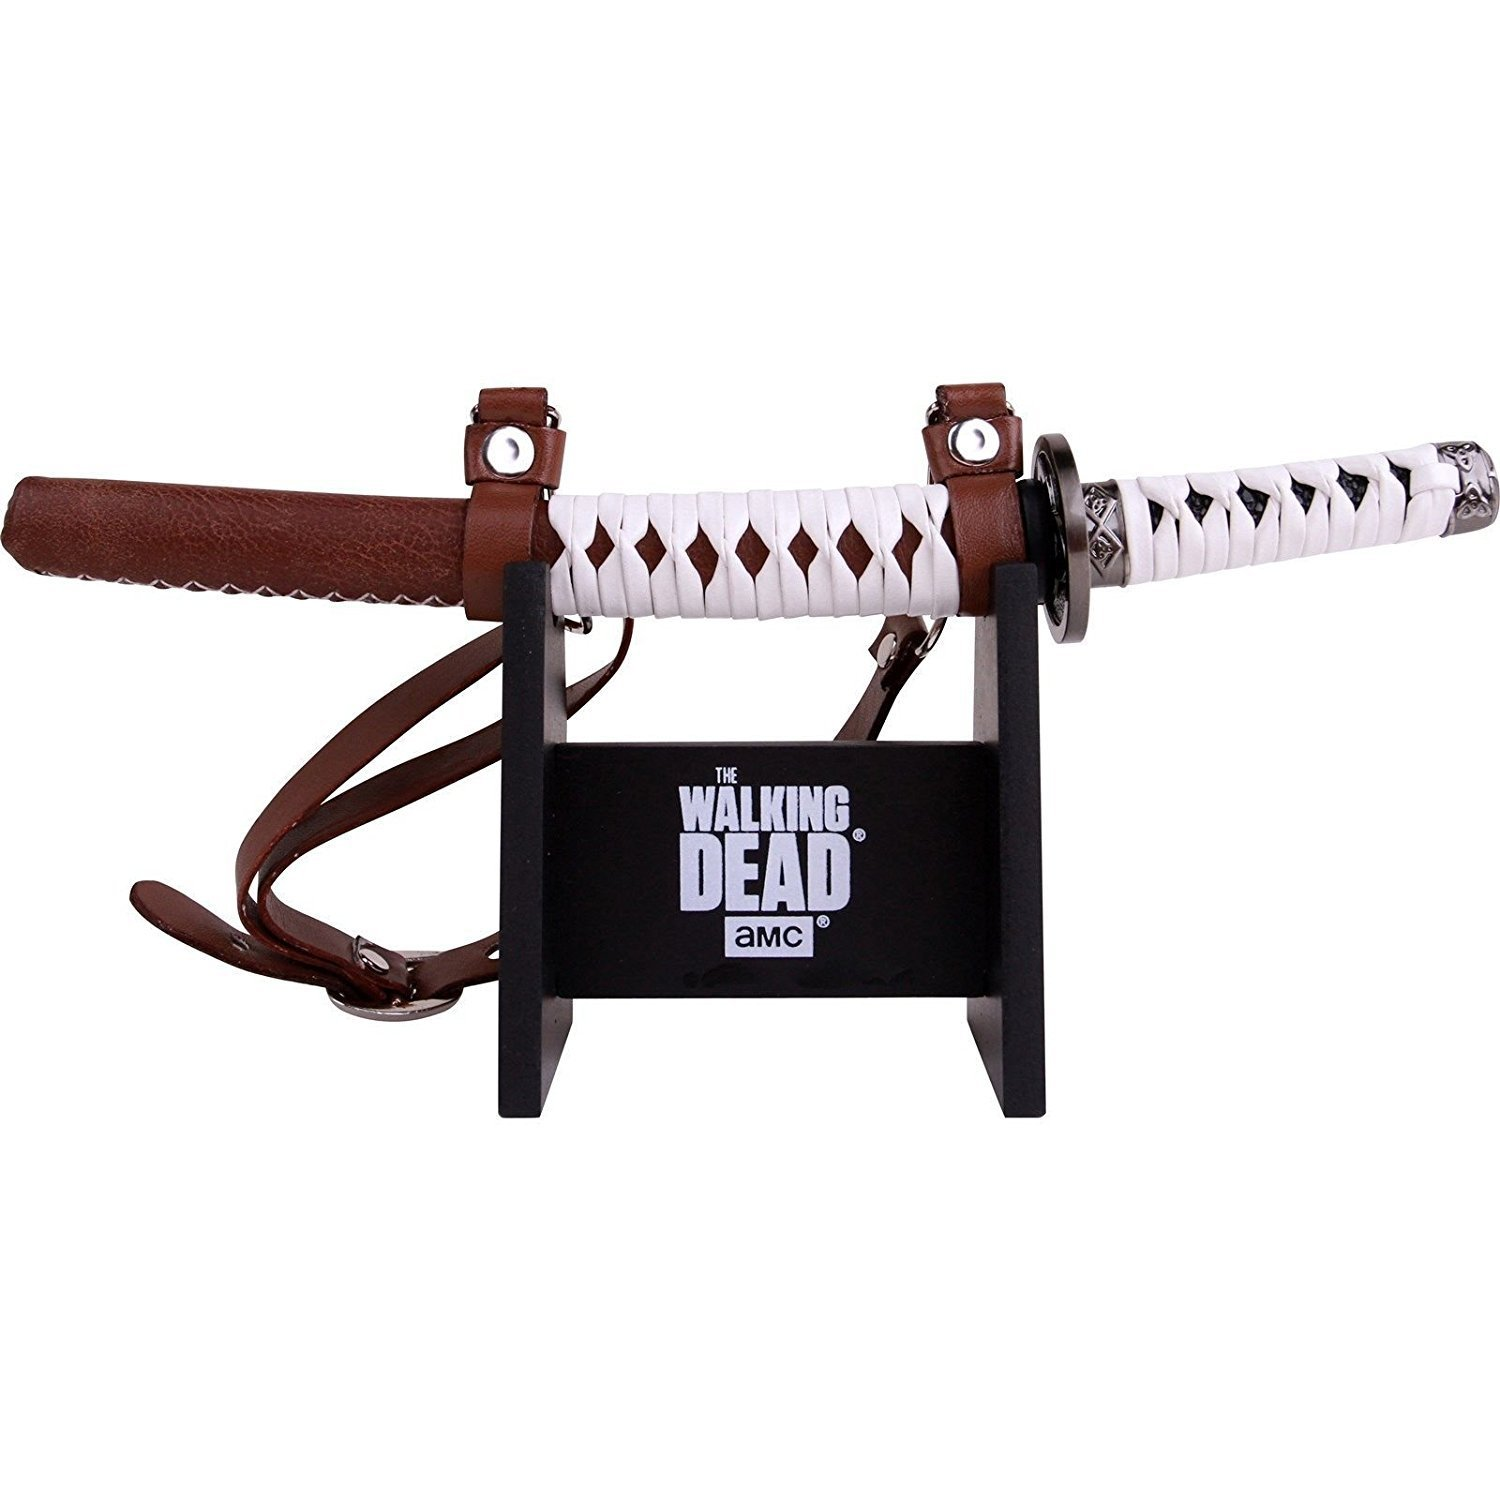 The Walking Dead Official Katana Letter Opener with Display Stand AMI 351386